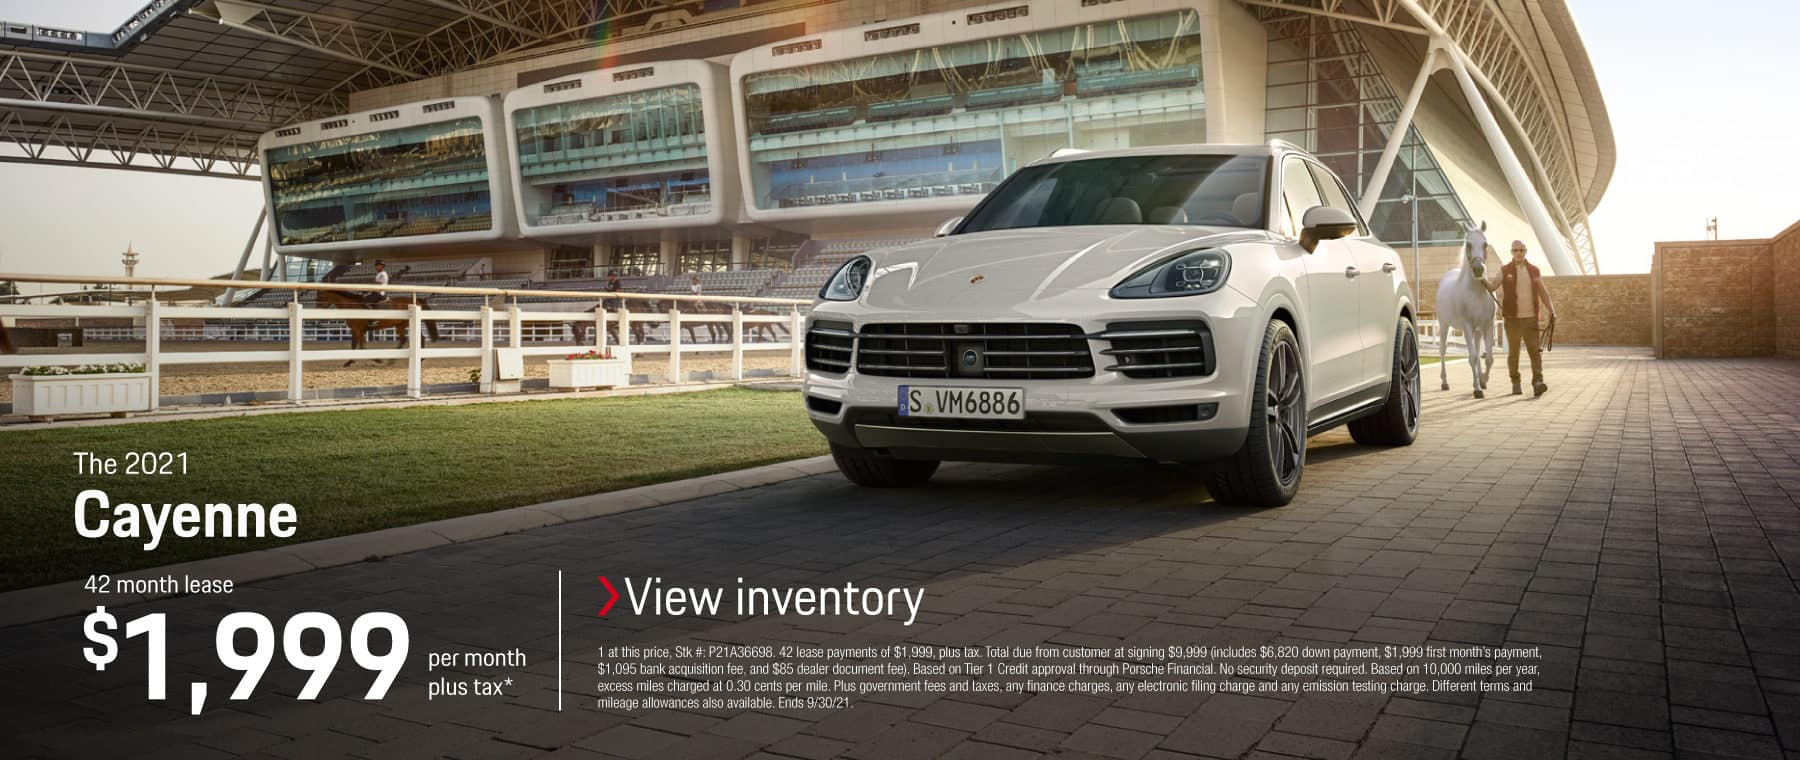 The 2021 Cayenne Lease